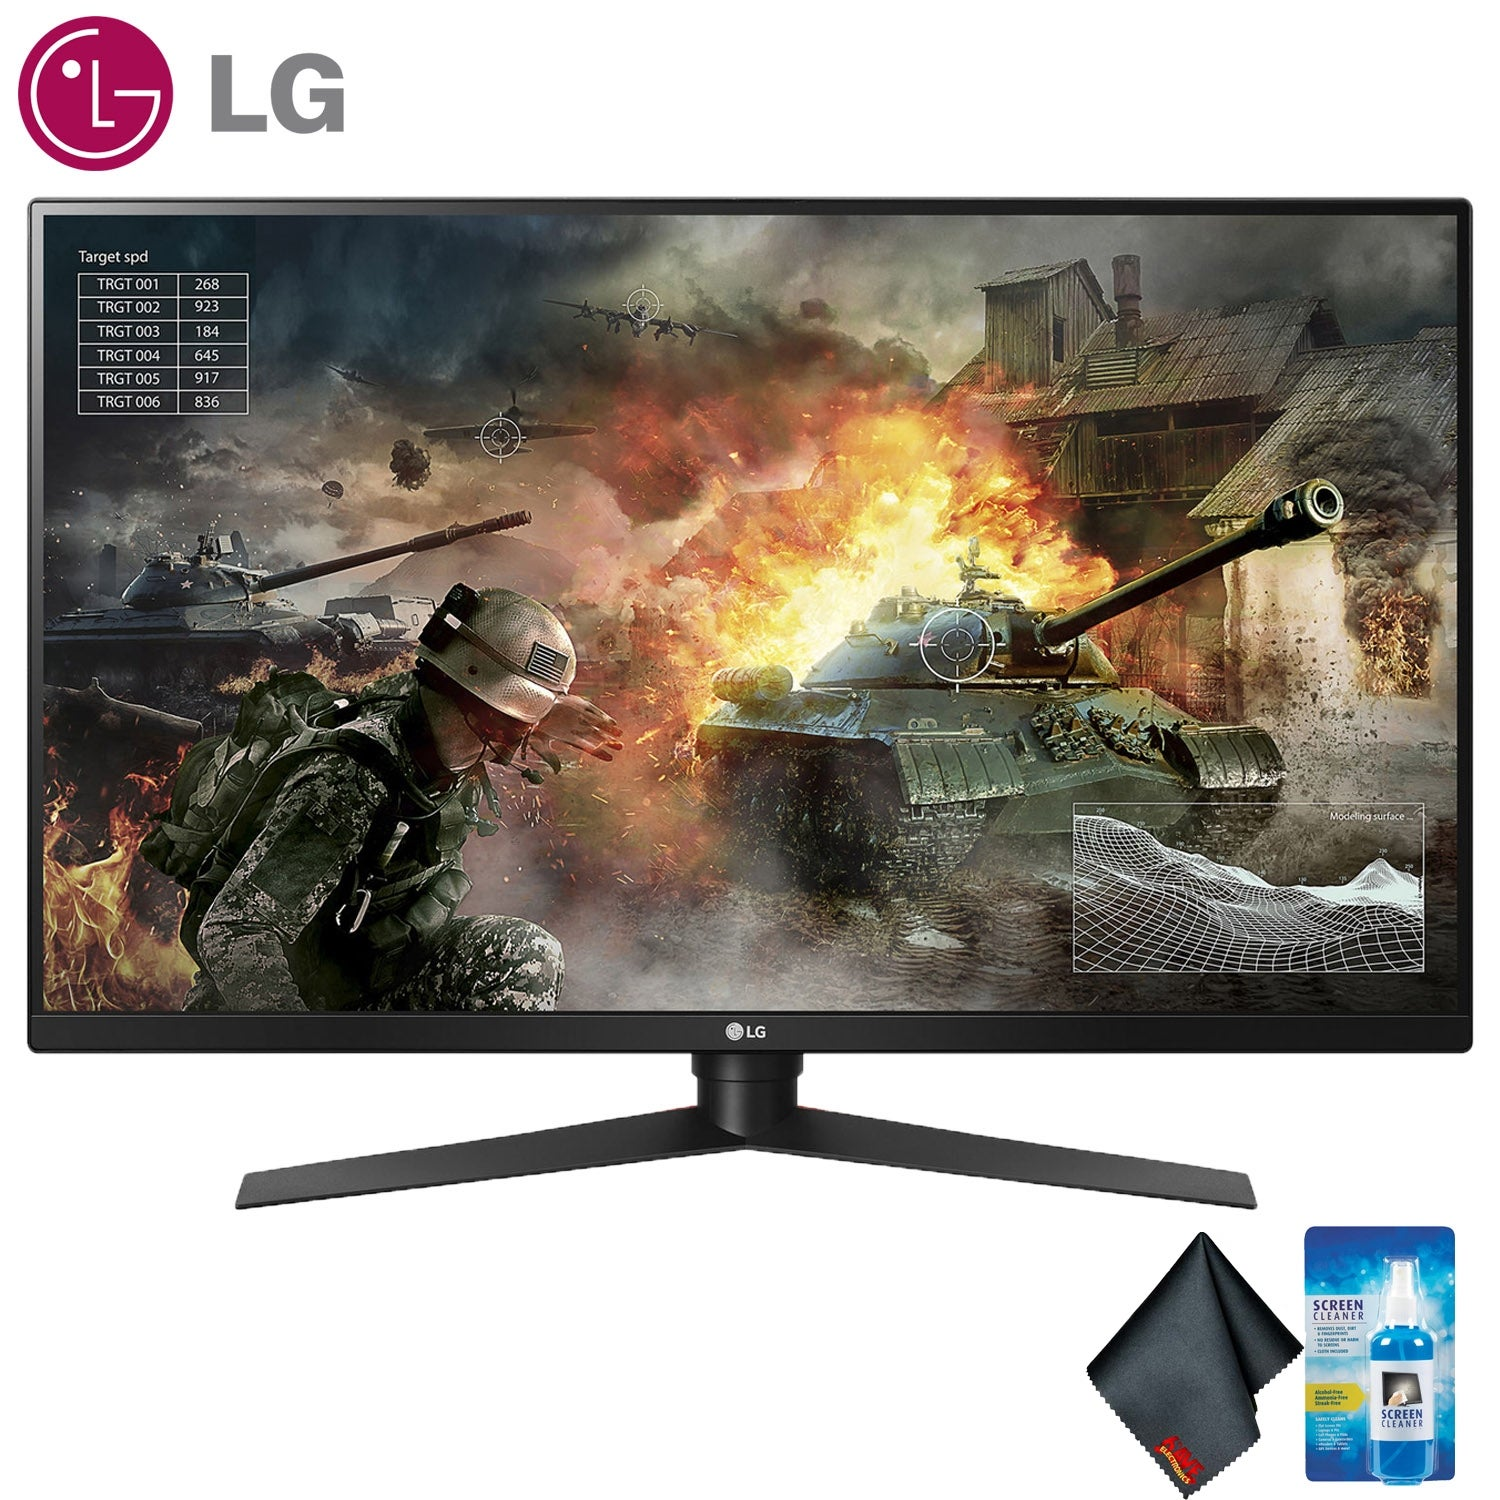 "LG 31.5"""" 16:9 144 Hz G-Sync LCD Gaming Monitor Bundle (Standard Bundle)"